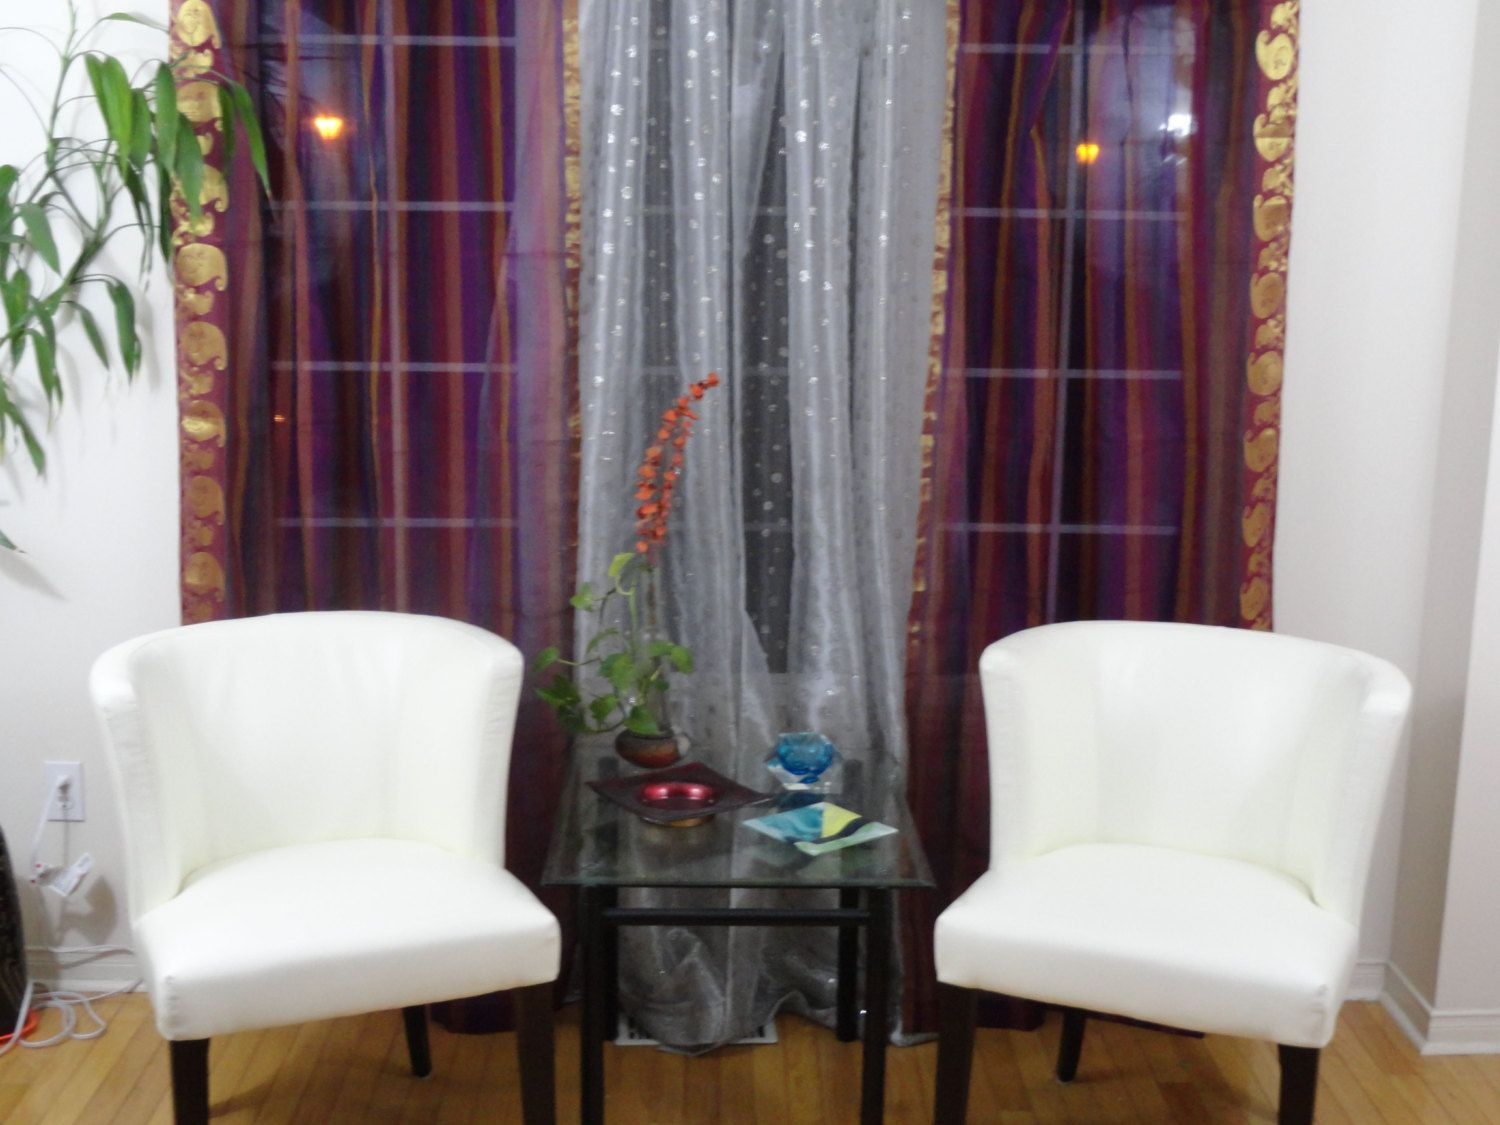 Indian curtains drapes - Wine Purple And Gold Indian Curtains French Window Curtains Drapes Or Valences Ethnic Home Decor Idea From Artikrti